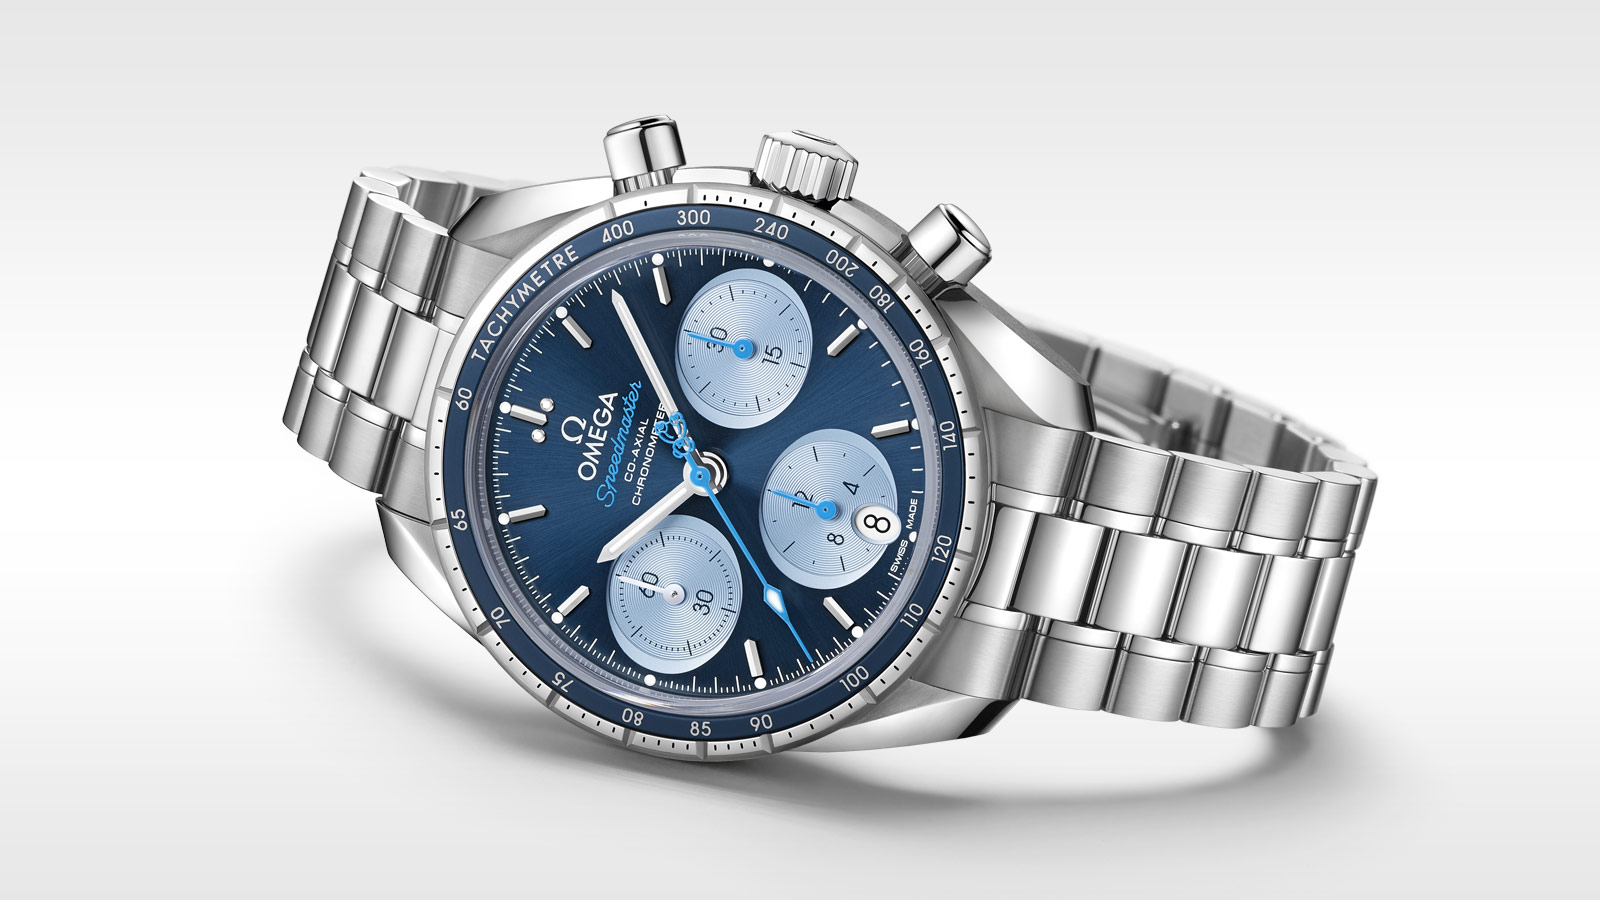 Speedmaster Speedmaster 38 mm Speedmaster 38 Co‑Axial Chronograph 38 mm - 324.30.38.50.03.002 - Vista 2